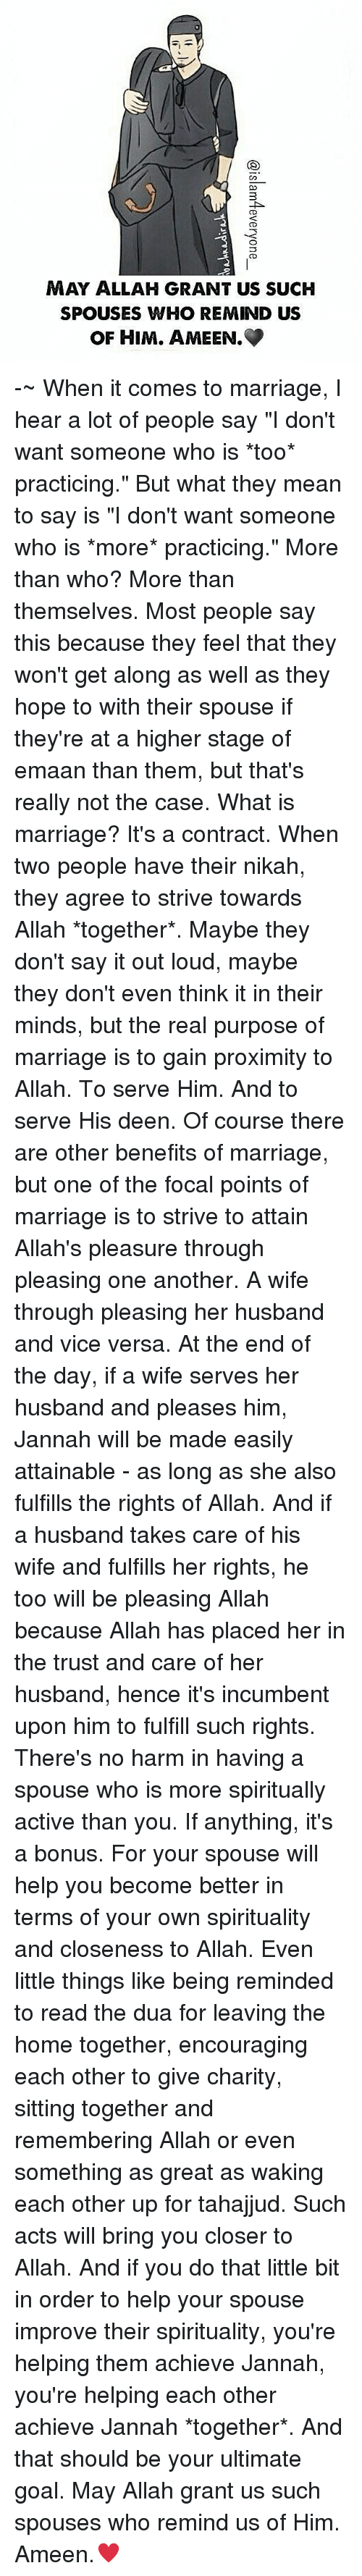 "Memes, 🤖, and Vice: MAY ALLAH GRANT US SUCH  SPOUSES WHO REMIND US  OF HIM. AMEEN. -~ When it comes to marriage, I hear a lot of people say ""I don't want someone who is *too* practicing."" But what they mean to say is ""I don't want someone who is *more* practicing."" More than who? More than themselves. Most people say this because they feel that they won't get along as well as they hope to with their spouse if they're at a higher stage of emaan than them, but that's really not the case. What is marriage? It's a contract. When two people have their nikah, they agree to strive towards Allah *together*. Maybe they don't say it out loud, maybe they don't even think it in their minds, but the real purpose of marriage is to gain proximity to Allah. To serve Him. And to serve His deen. Of course there are other benefits of marriage, but one of the focal points of marriage is to strive to attain Allah's pleasure through pleasing one another. A wife through pleasing her husband and vice versa. At the end of the day, if a wife serves her husband and pleases him, Jannah will be made easily attainable - as long as she also fulfills the rights of Allah. And if a husband takes care of his wife and fulfills her rights, he too will be pleasing Allah because Allah has placed her in the trust and care of her husband, hence it's incumbent upon him to fulfill such rights. There's no harm in having a spouse who is more spiritually active than you. If anything, it's a bonus. For your spouse will help you become better in terms of your own spirituality and closeness to Allah. Even little things like being reminded to read the dua for leaving the home together, encouraging each other to give charity, sitting together and remembering Allah or even something as great as waking each other up for tahajjud. Such acts will bring you closer to Allah. And if you do that little bit in order to help your spouse improve their spirituality, you're helping them achieve Jannah, you're helping each other achieve Jannah *together*. And that should be your ultimate goal. May Allah grant us such spouses who remind us of Him. Ameen.♥"